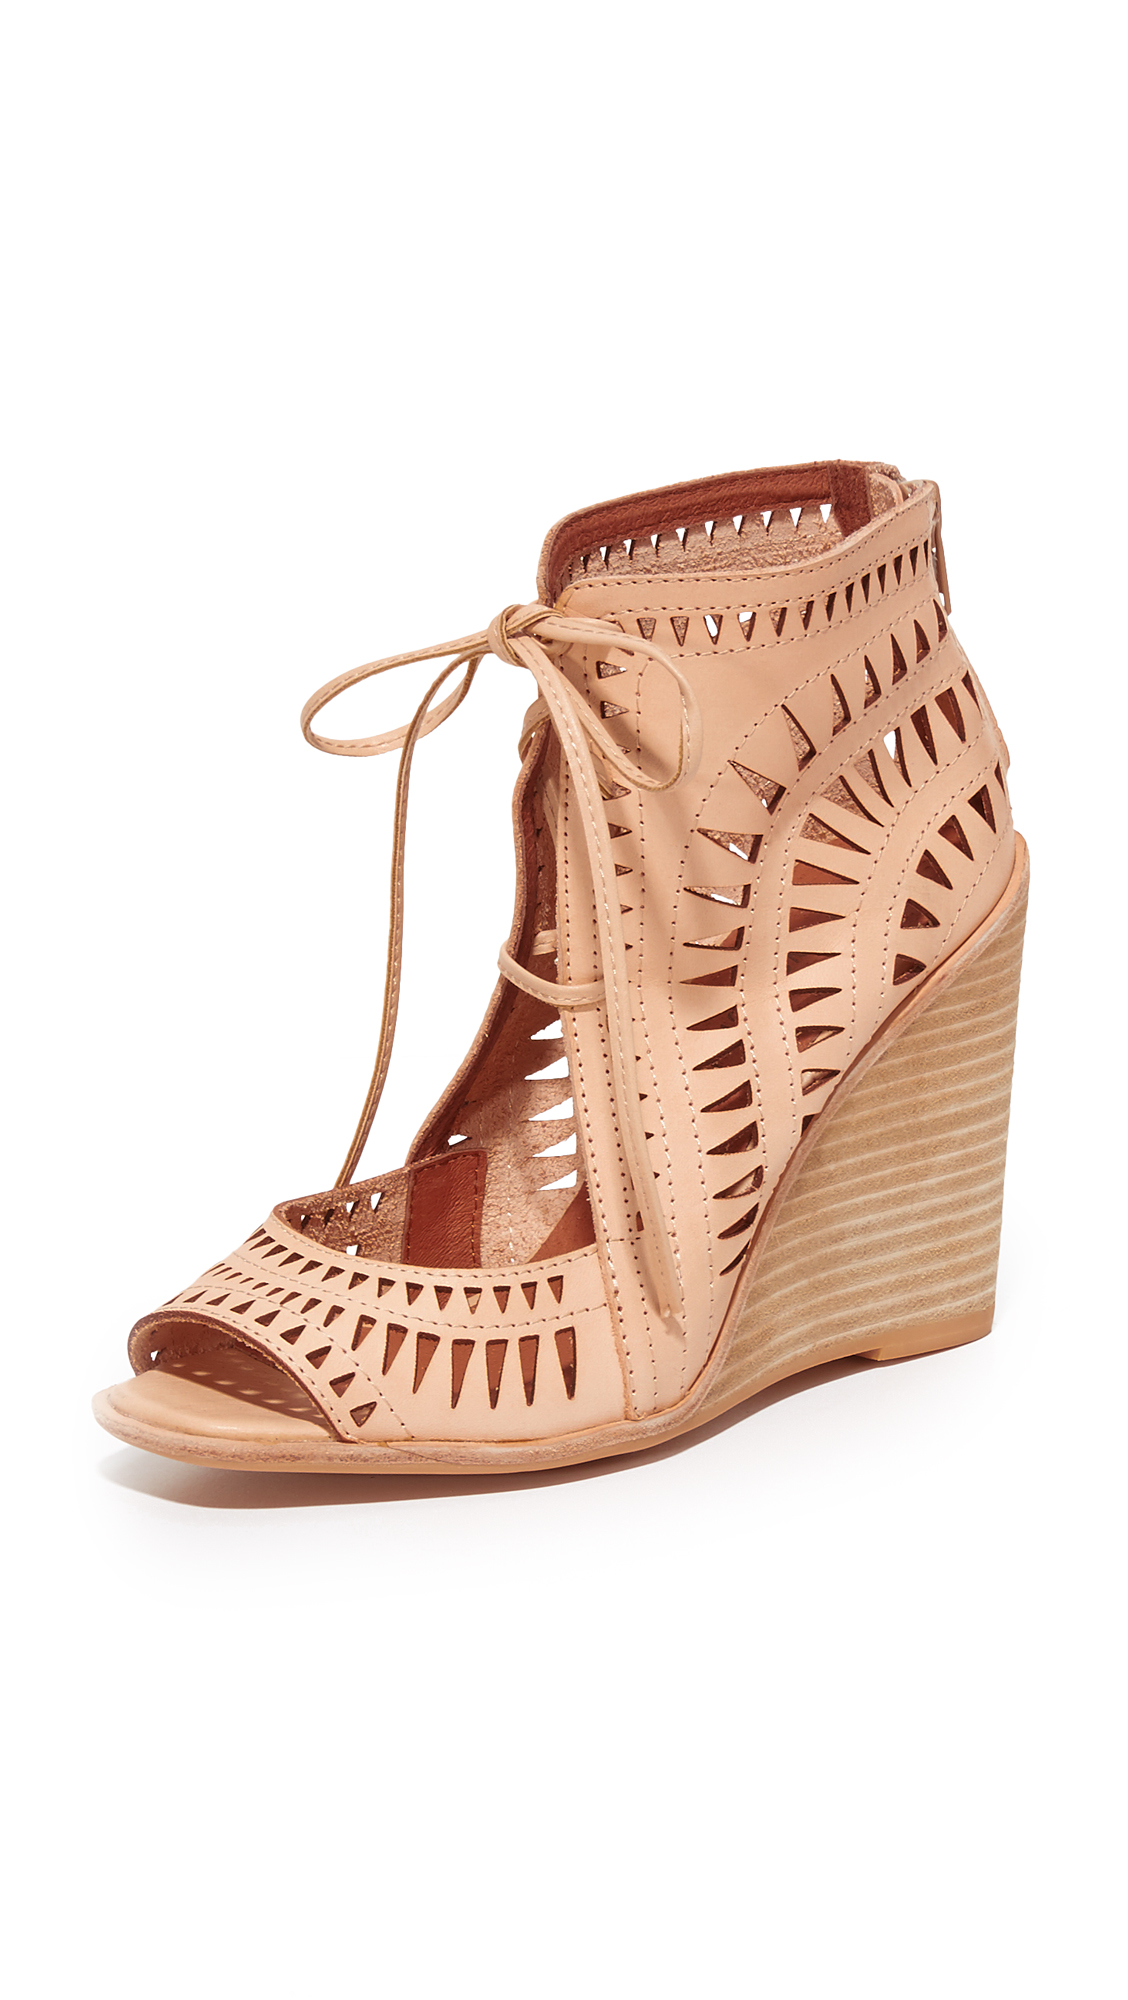 Jeffrey Campbell Rodillo Wedge Sandals - Nude